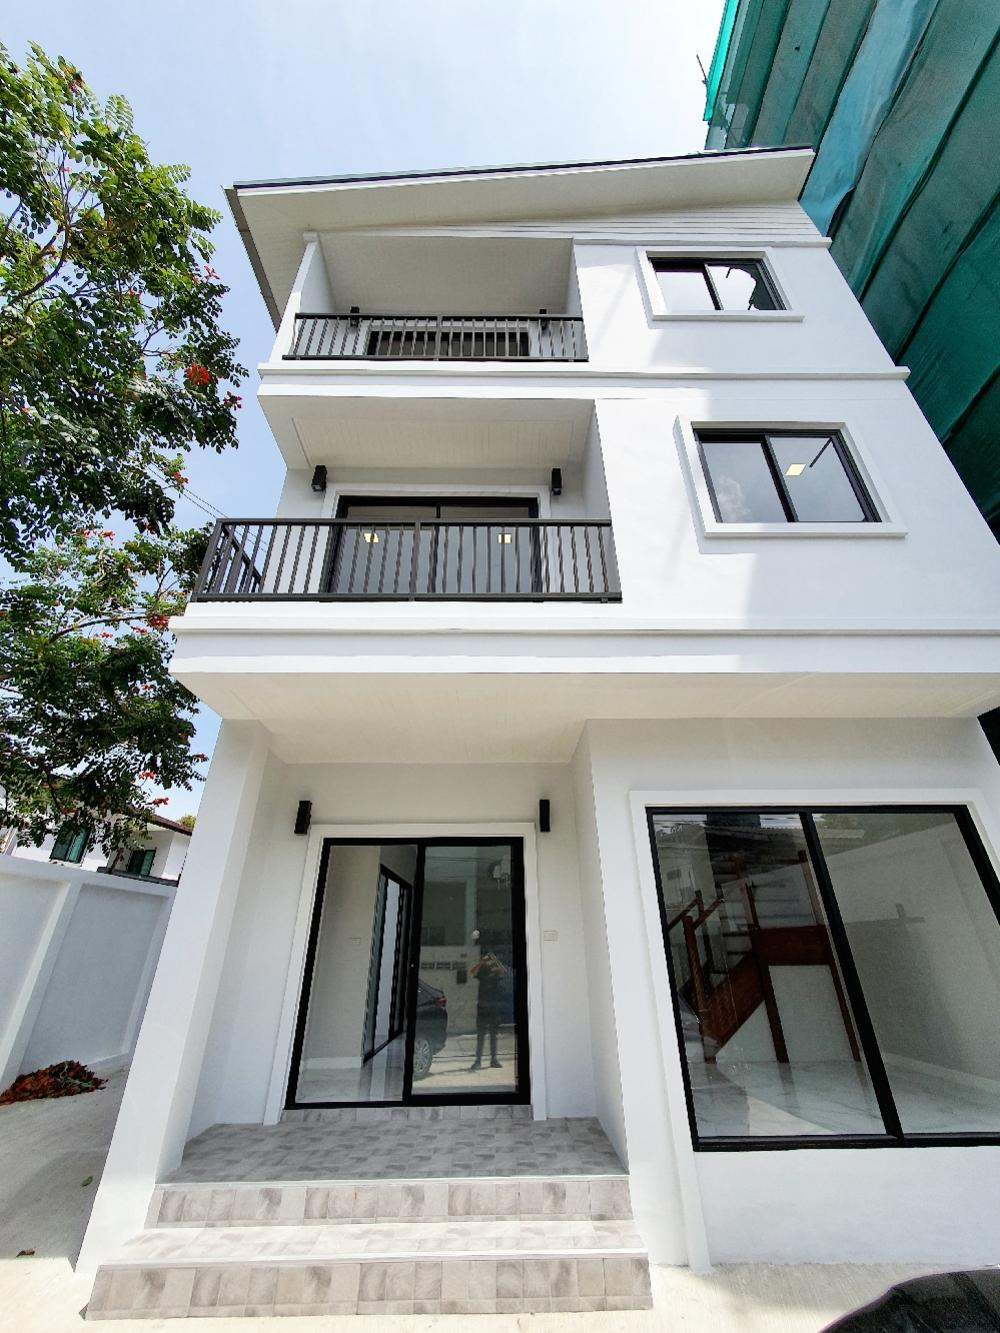 For RentHome OfficeSukhumvit, Asoke, Thonglor : The Home Office for rent at Ekkamai Areacall for viewing 0890505525